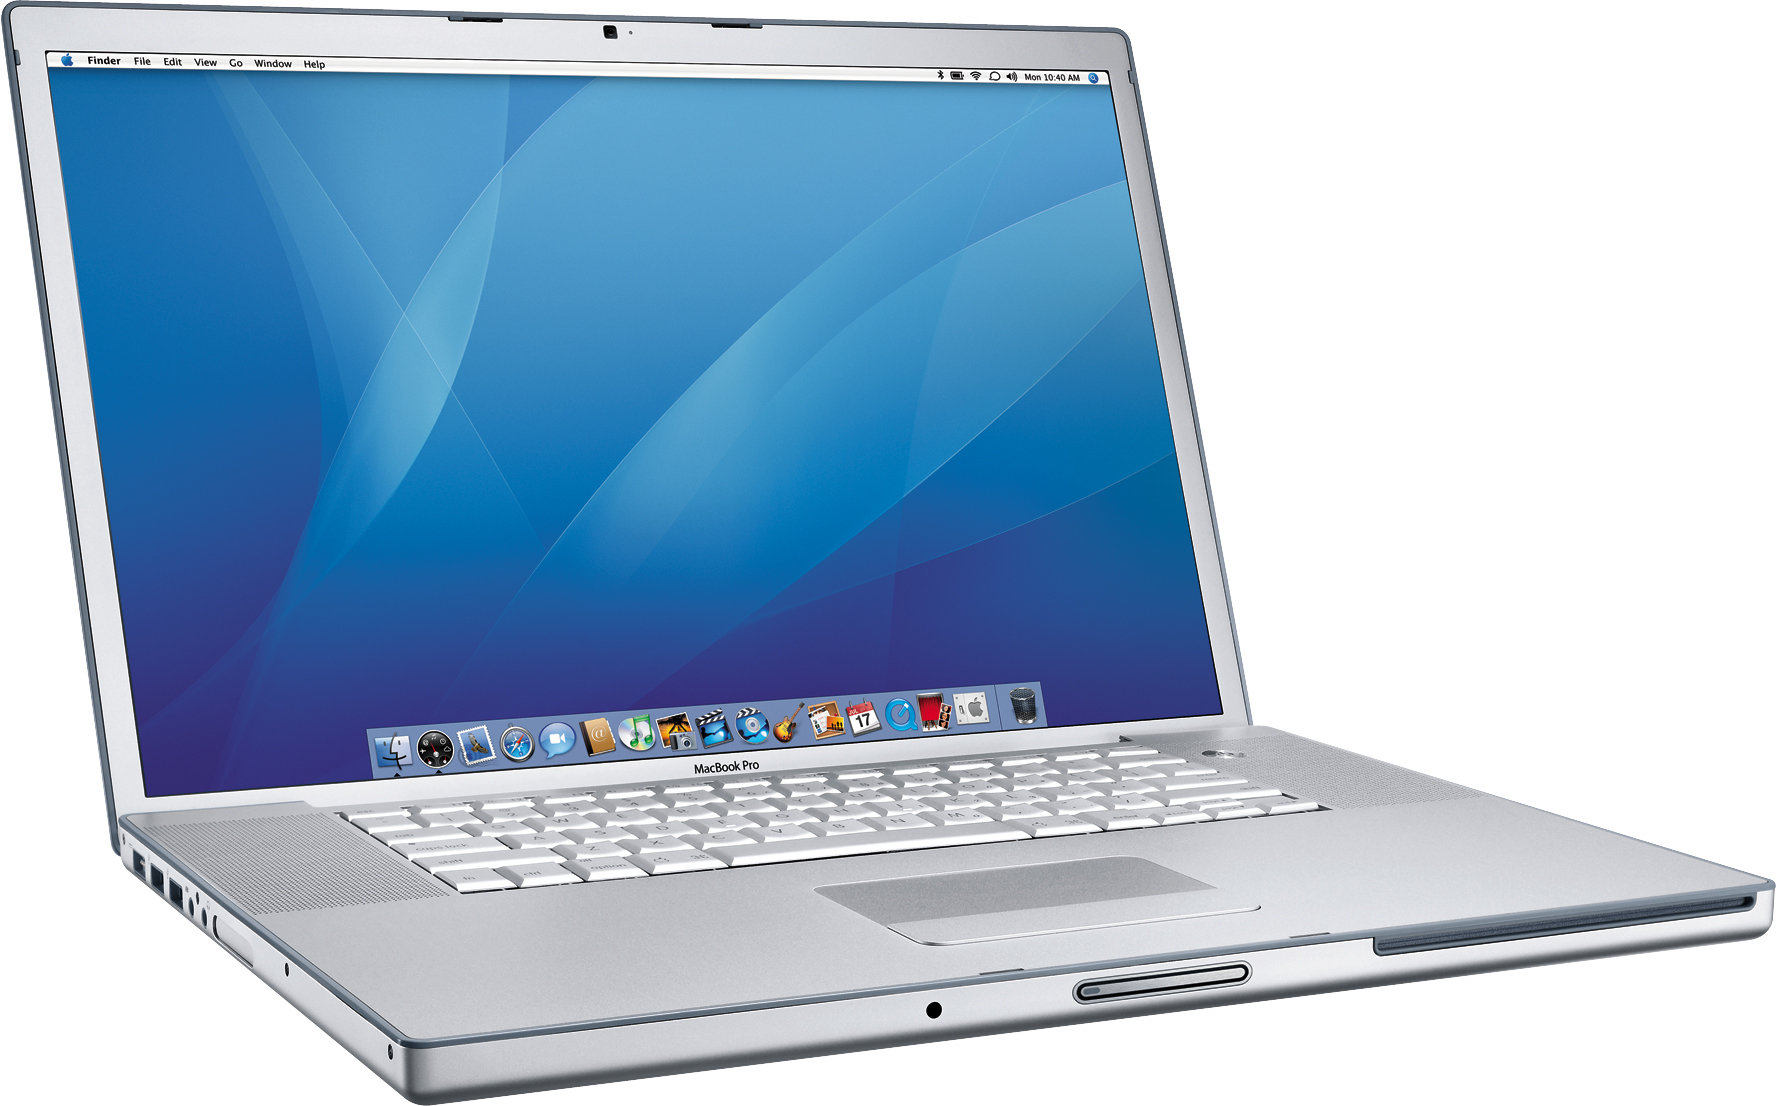 Laptop Apple Macbook Pro; Core2duo; 2.4 Ghz; 2 Gb Ram; 160 Gb Hdd; Abd5490